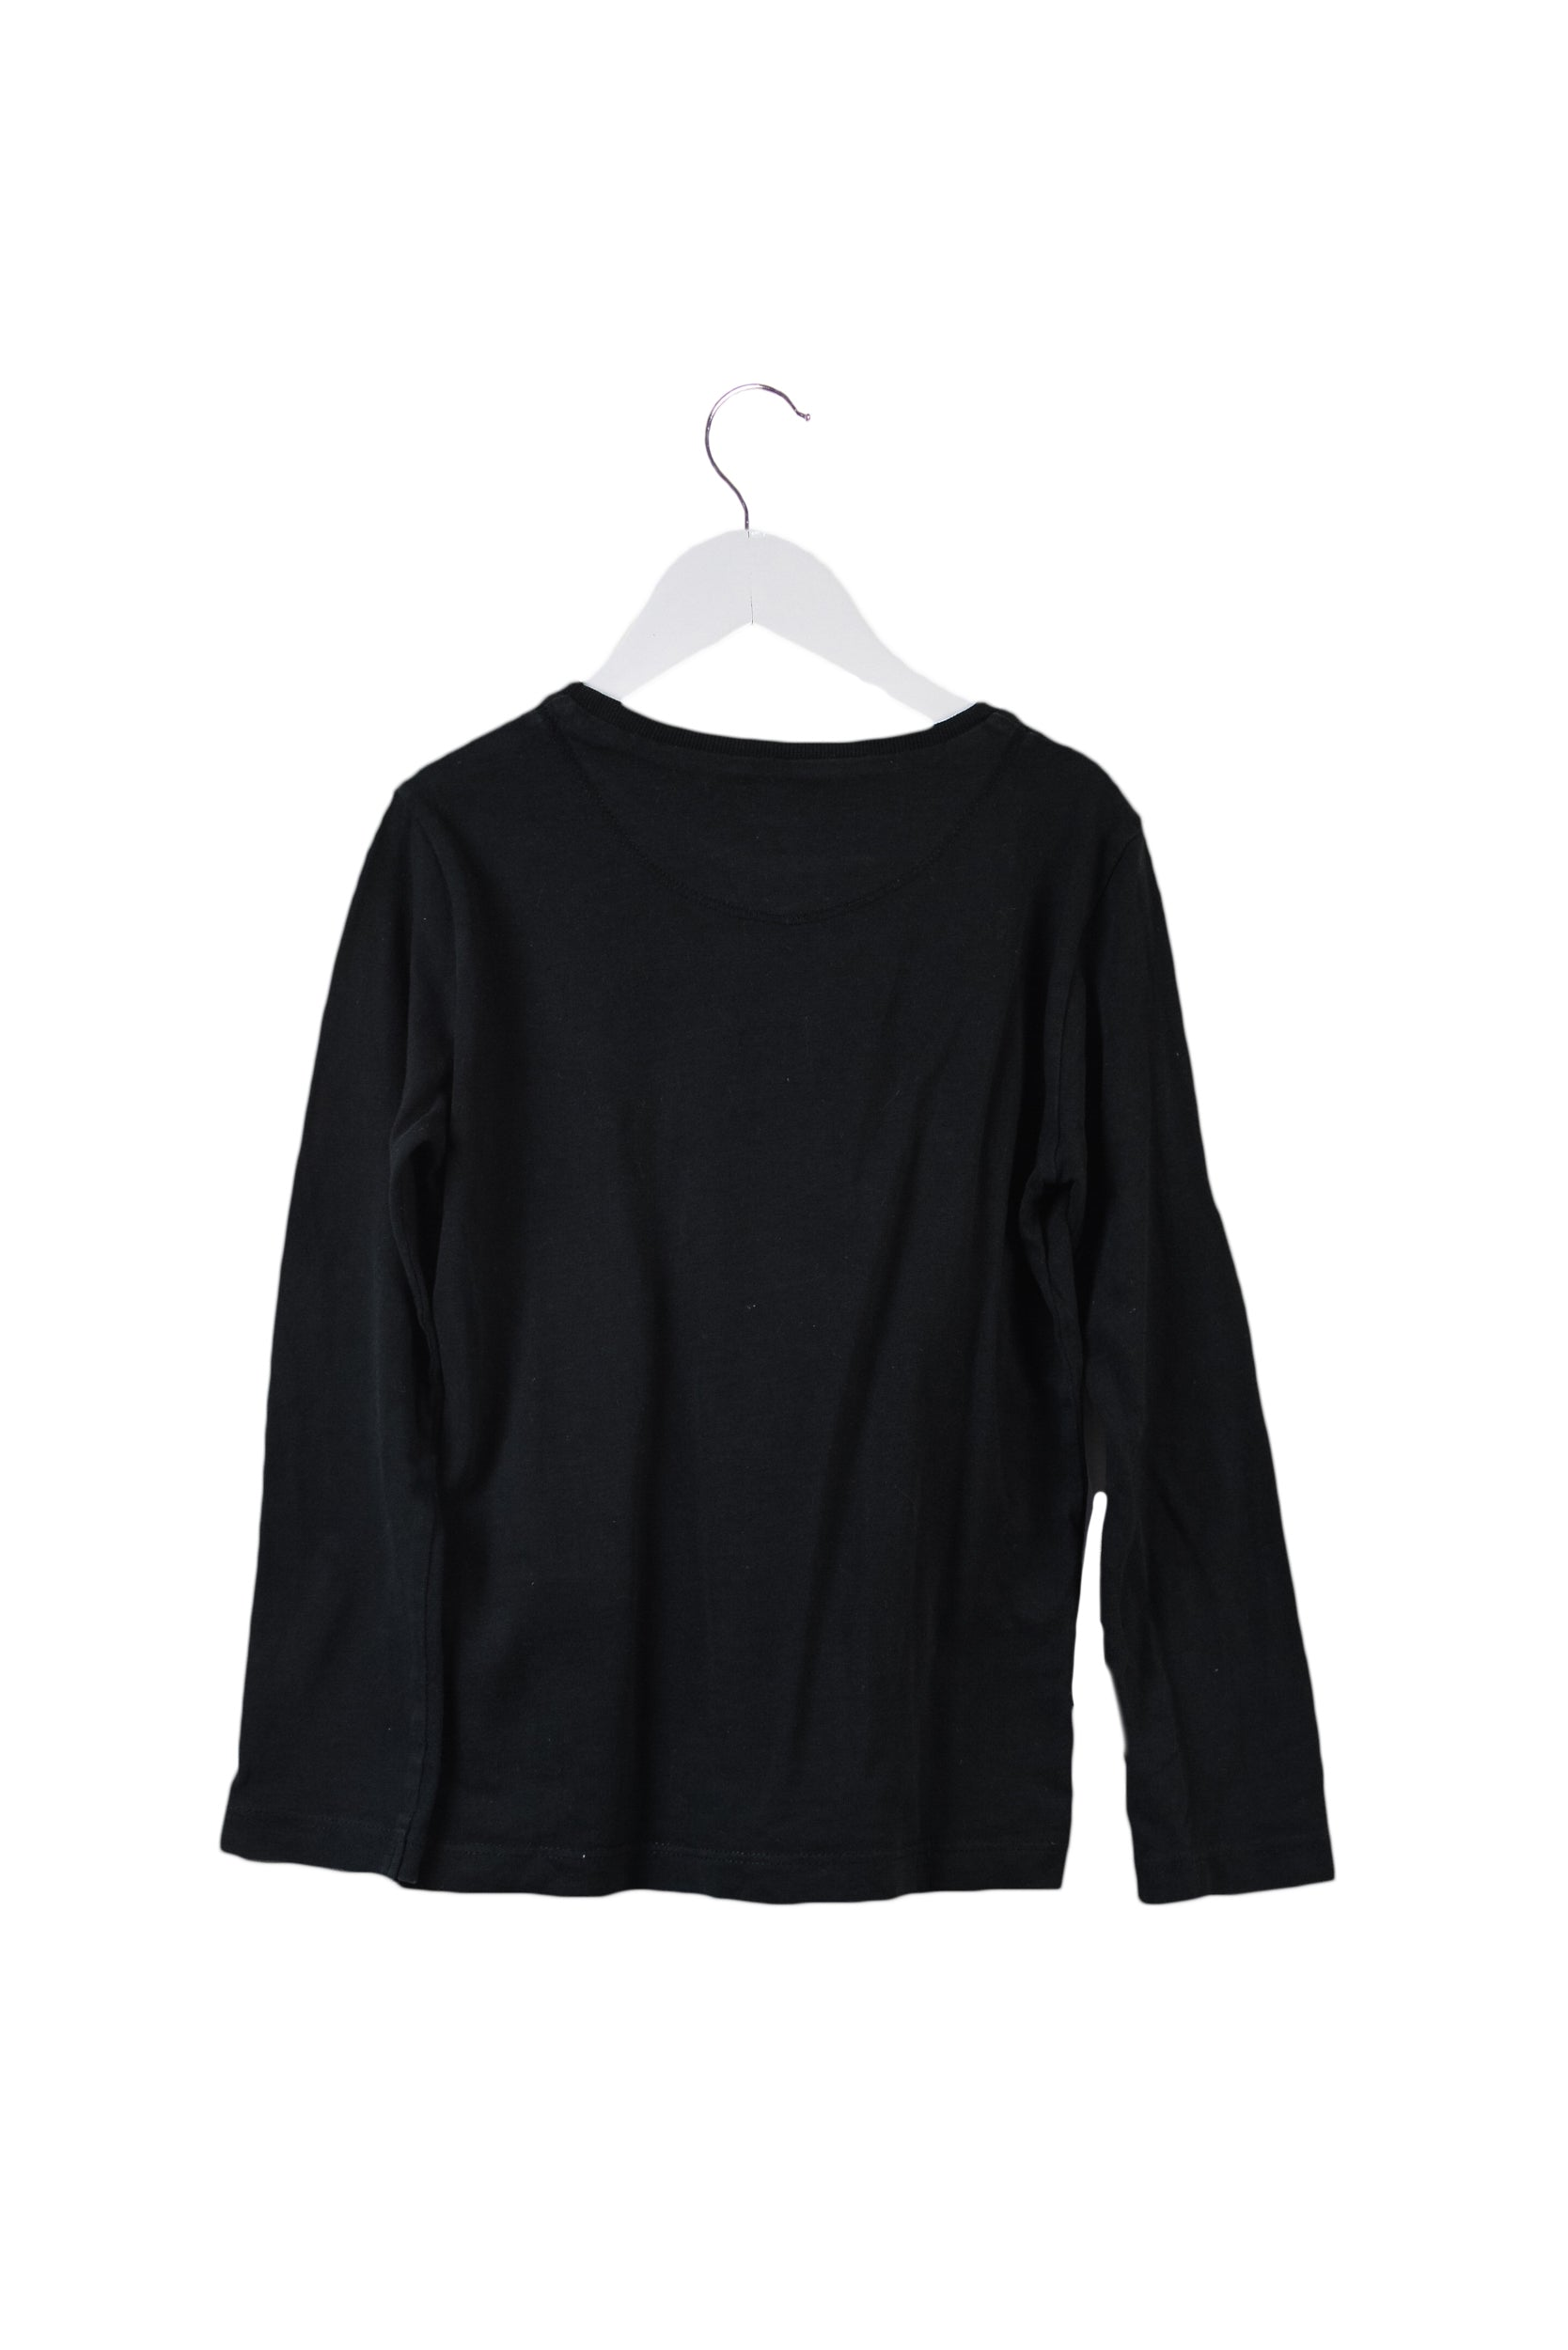 Long Sleeve Top 6T at Retykle